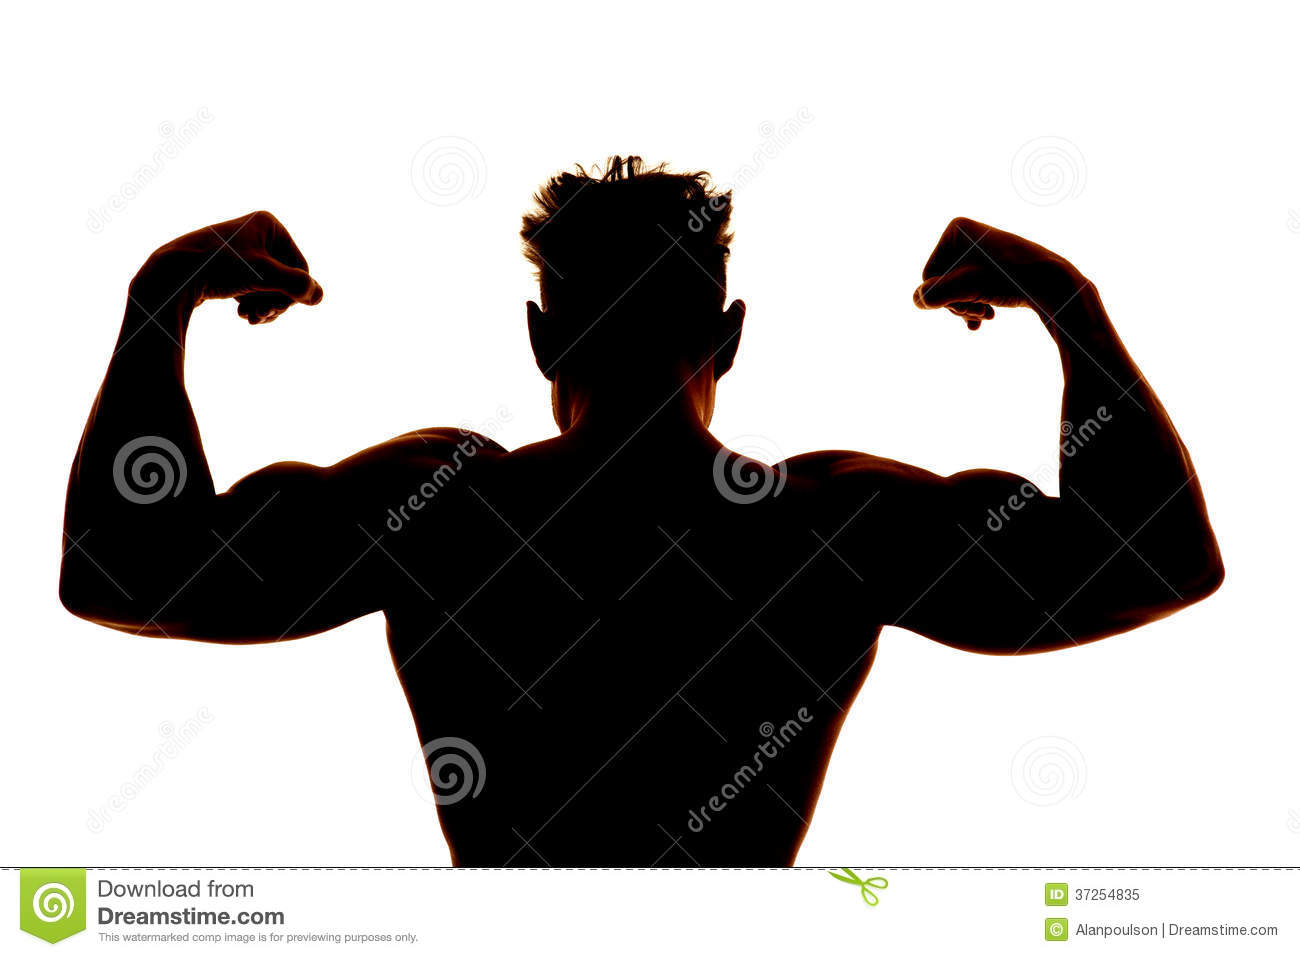 Watch more like Muscle Man Silhouette Clip Art